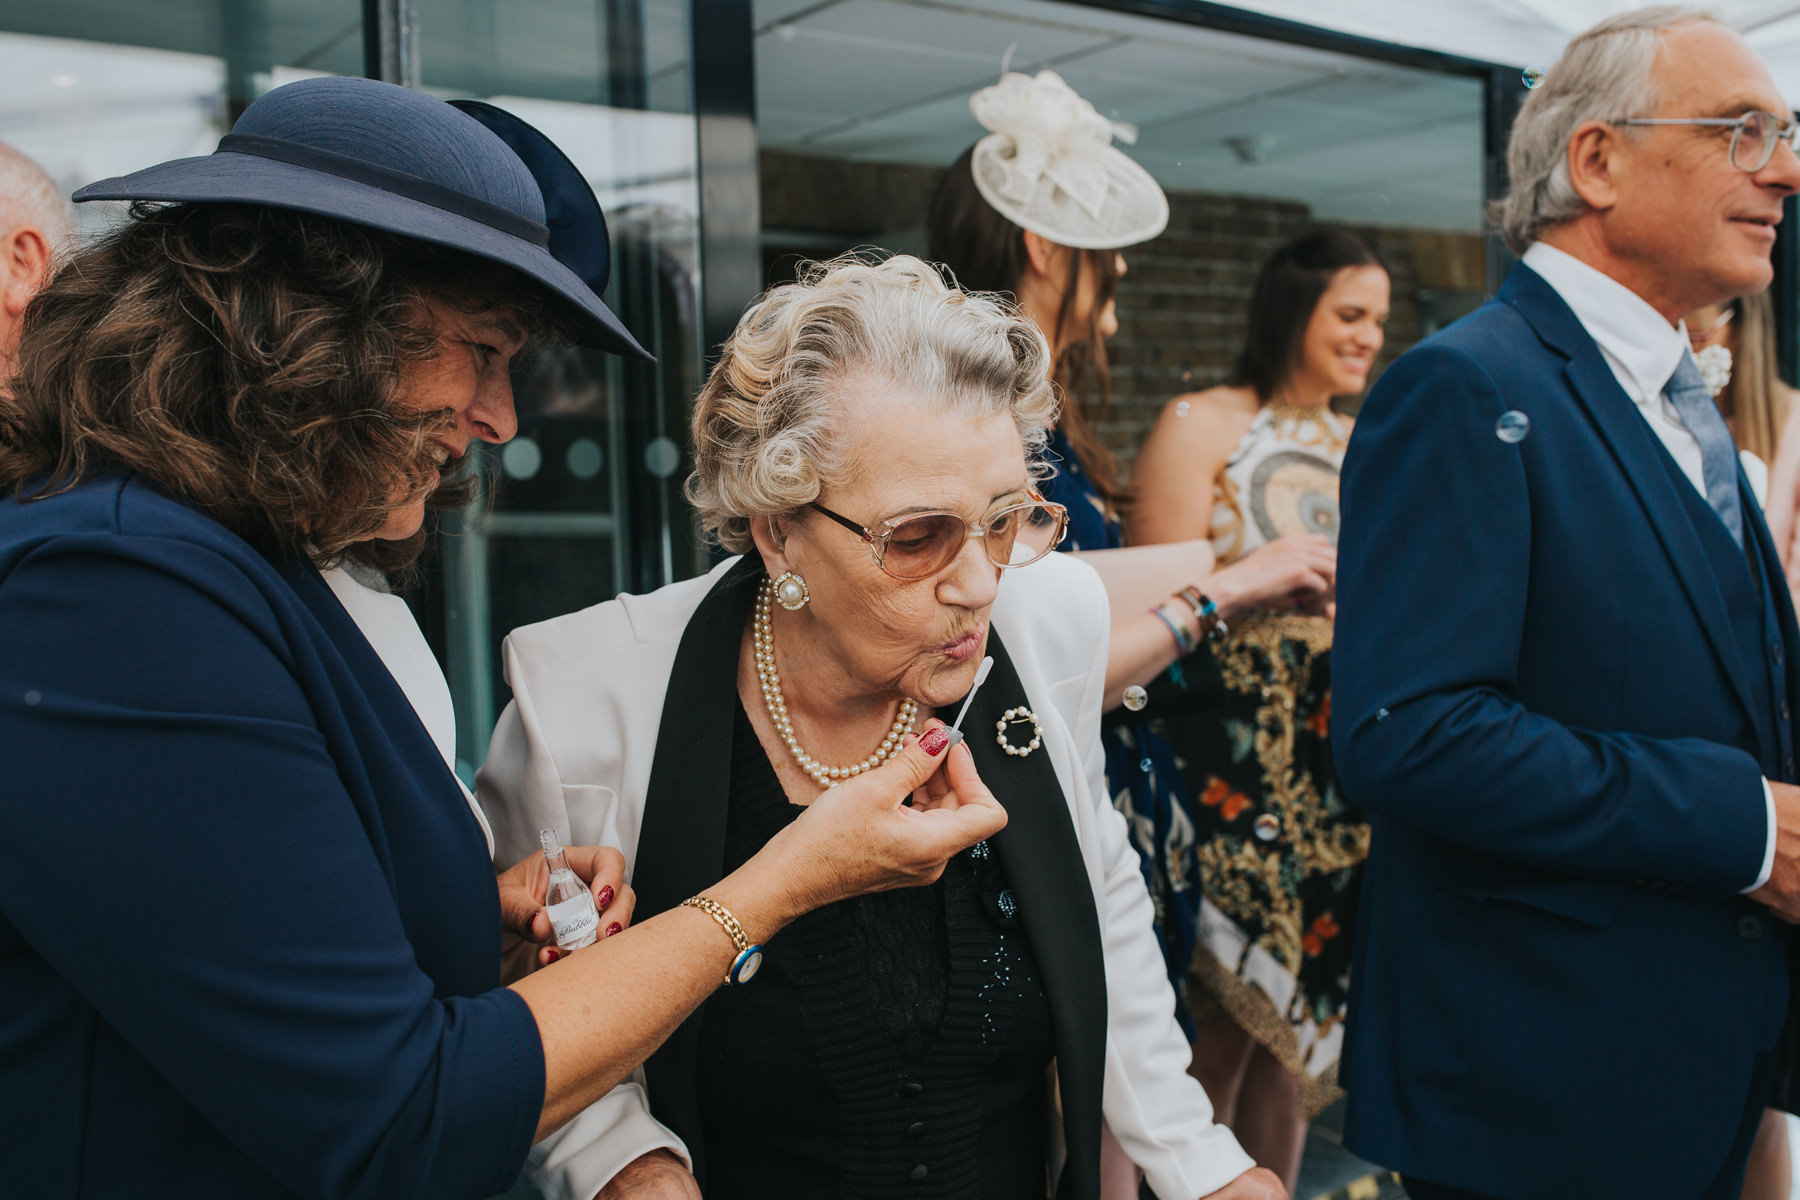 The Bingham Wedding Richmond-groom bride guests blowing bubbles balcony.jpg